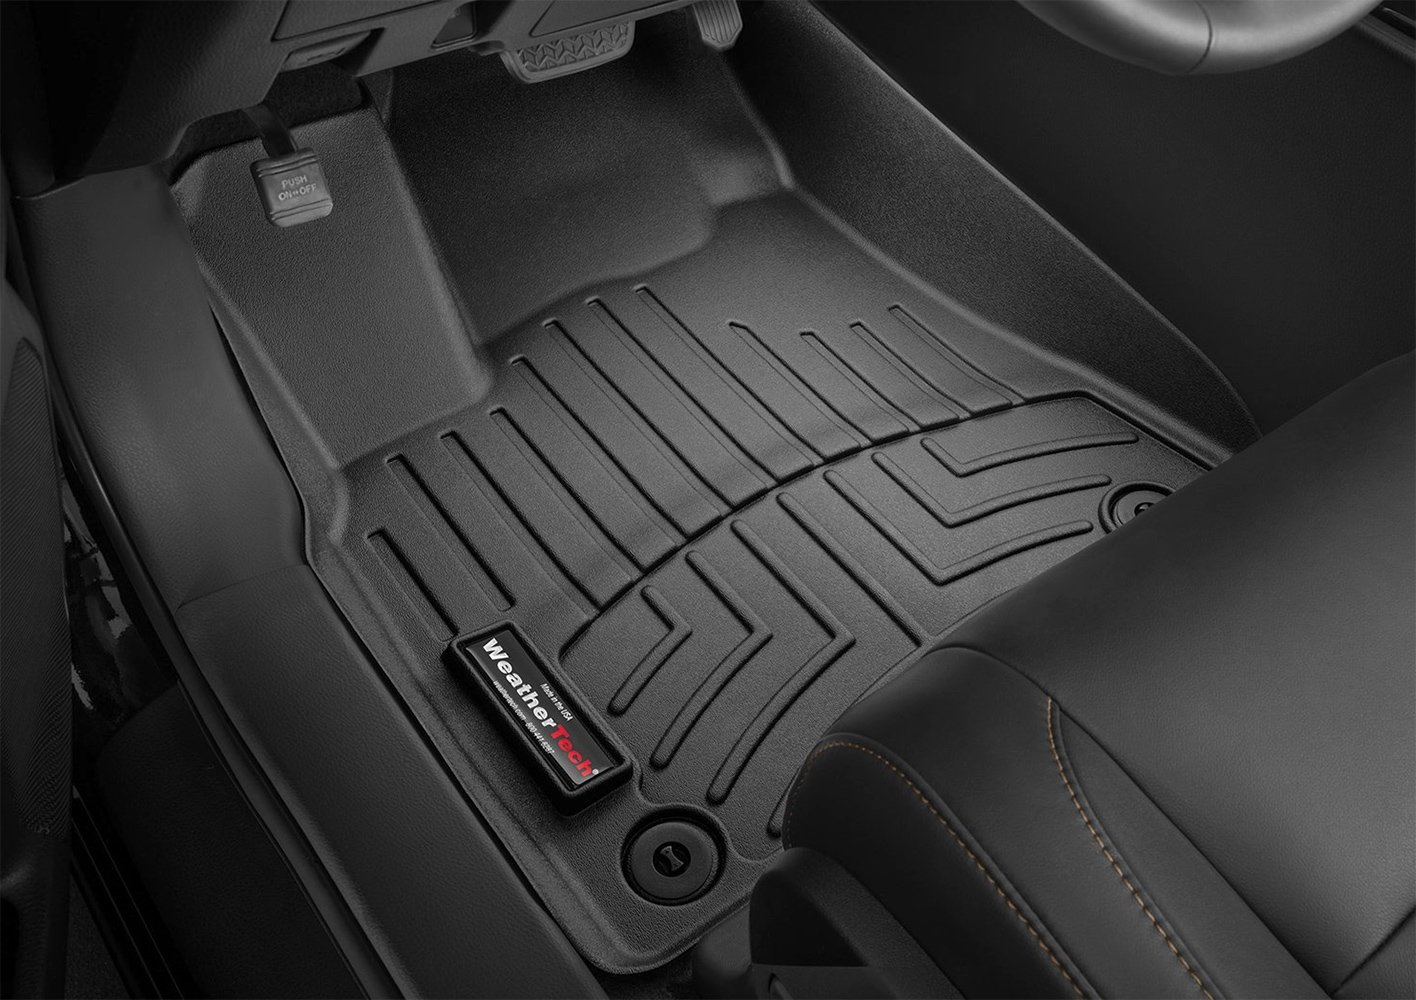 door floor four mini convertible berber attachment coco hardtop accessories coupe countryman paceman velcro hatchback cooper mats authentic mat custom clubman cocomats roadster